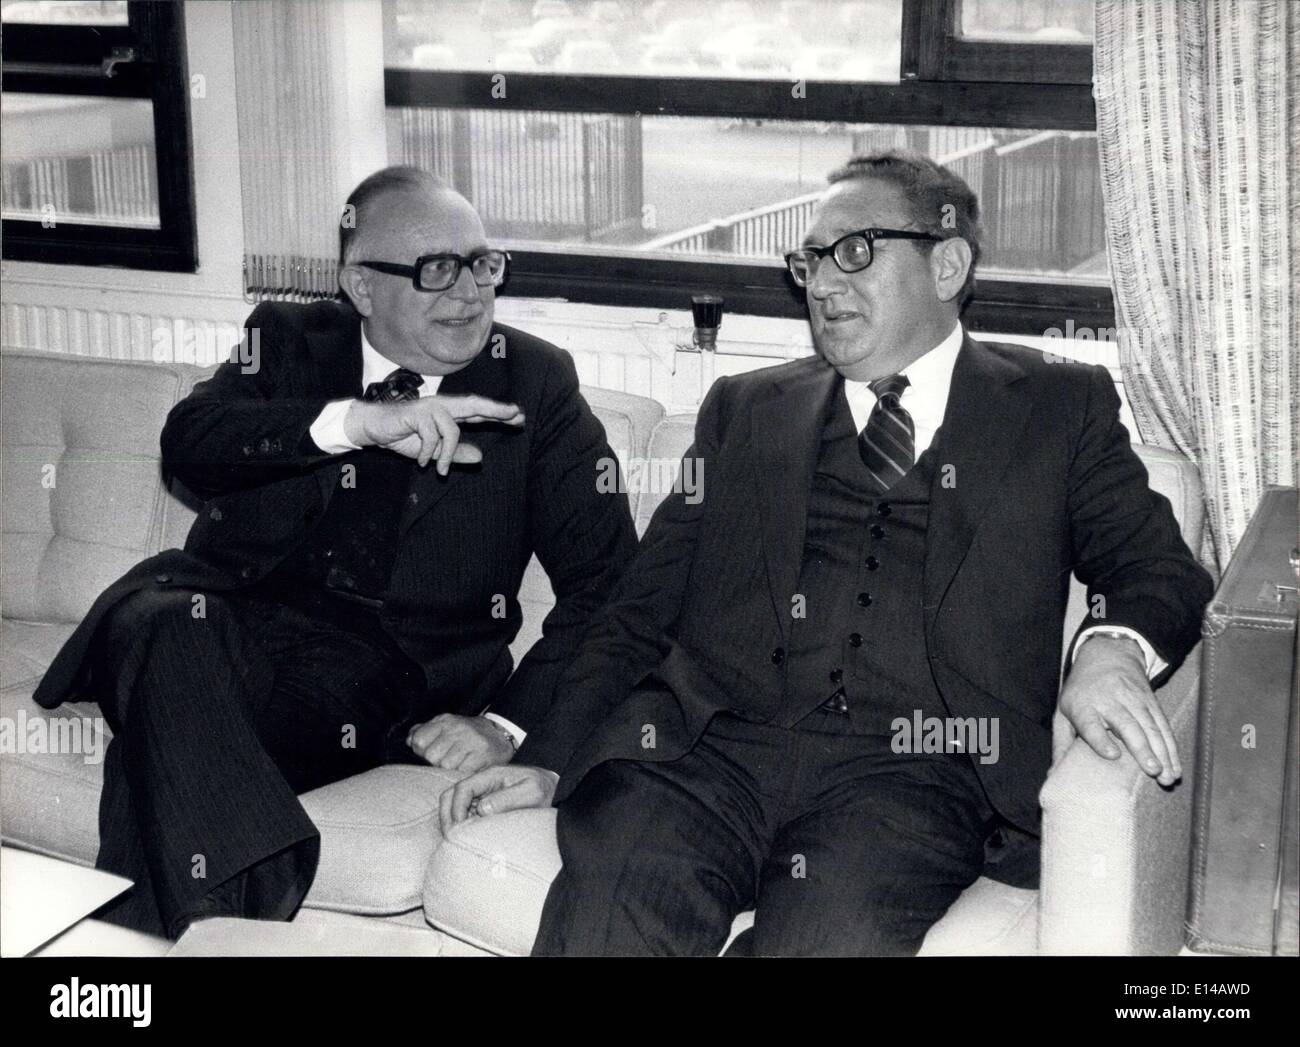 Apr. 17, 2012 - The Ministerial Session of the NATO Council, Brussels, 11th December 1975 Before this afternoon's session was resumed, the US secretary of STATE, Mr. H. Kissinger, had a meeting with the Italian Foreign Minister, Mr. M. Rumor, in the offices of the US Delegation to NATO. Seen here are the two Foreign Minister in discussion. - Stock Image